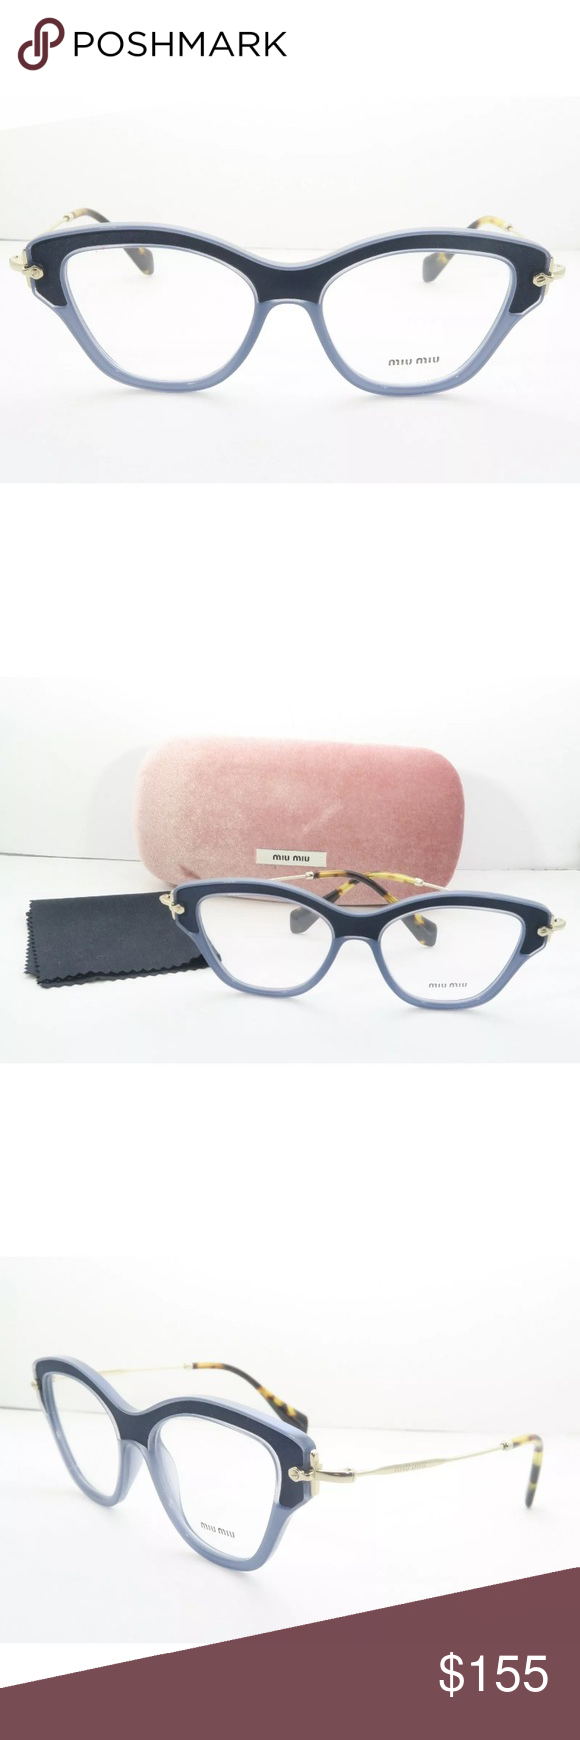 e33cc20d271 Miu Miu Eyeglasses 07O Blue Frame New with clear lens Comes with Miu Miu  Case Authentic Miu Miu Accessories Glasses